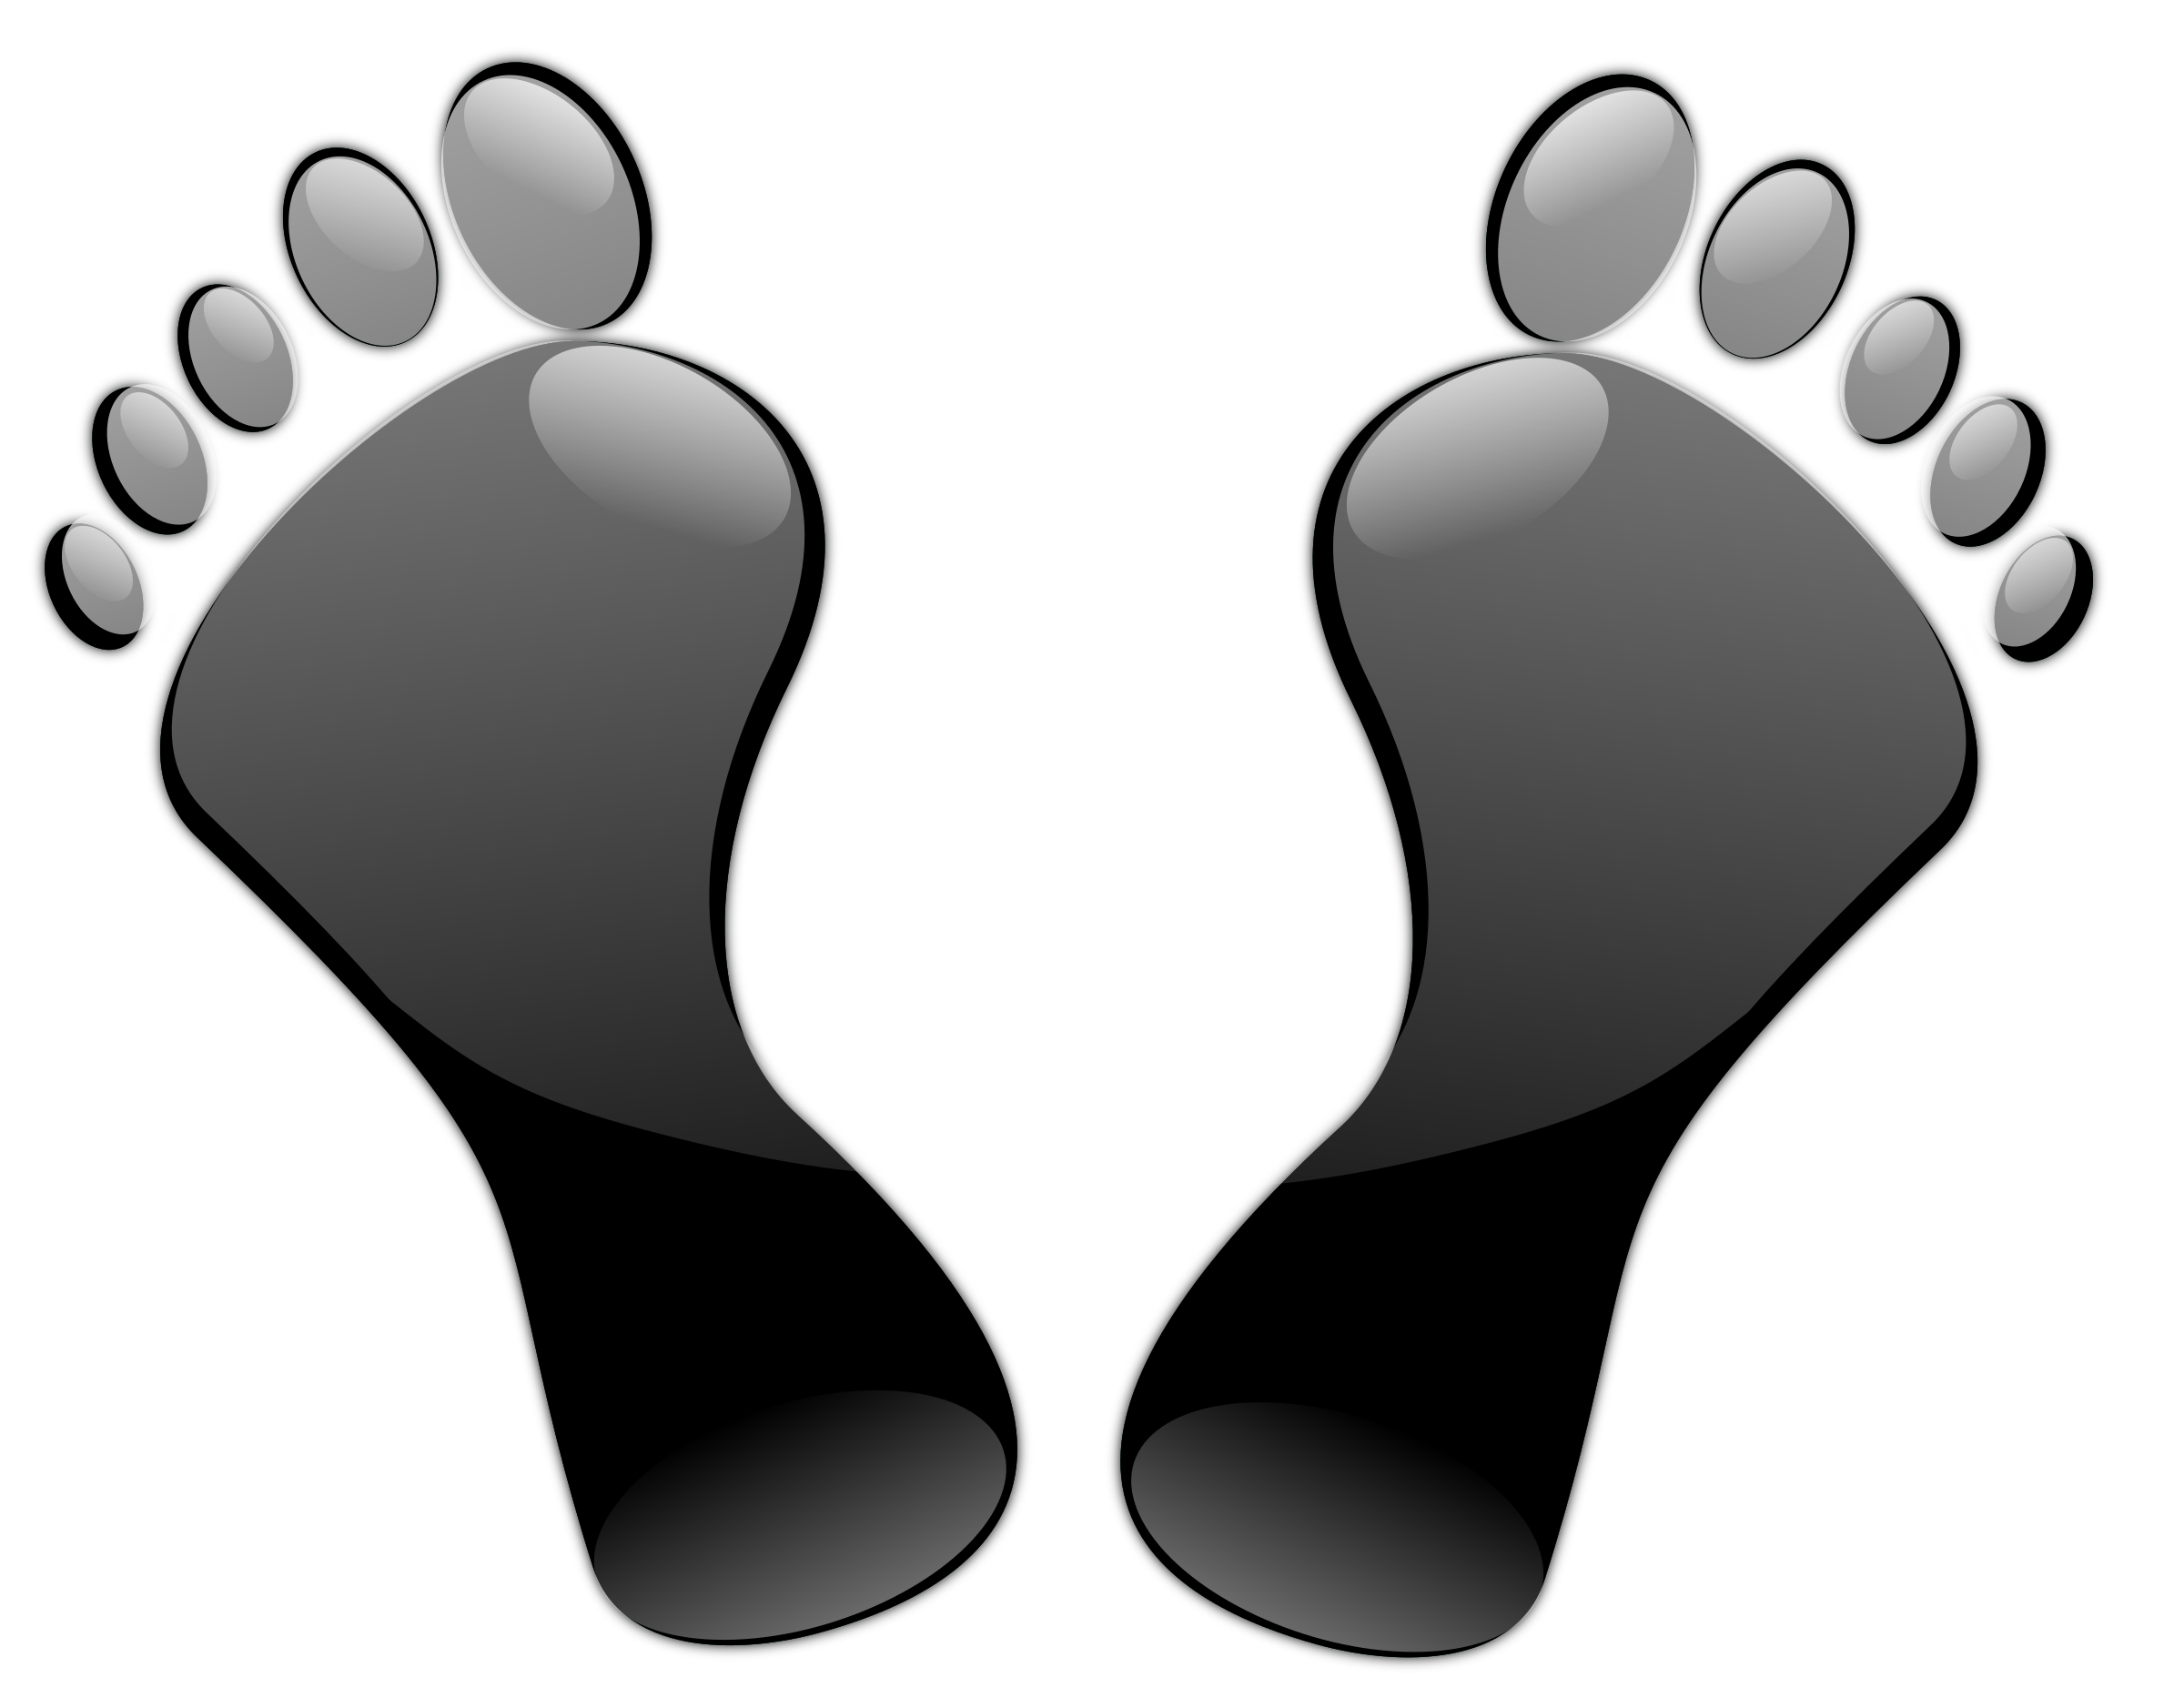 jpg black and white Feet big image png. Foot clipart black and white